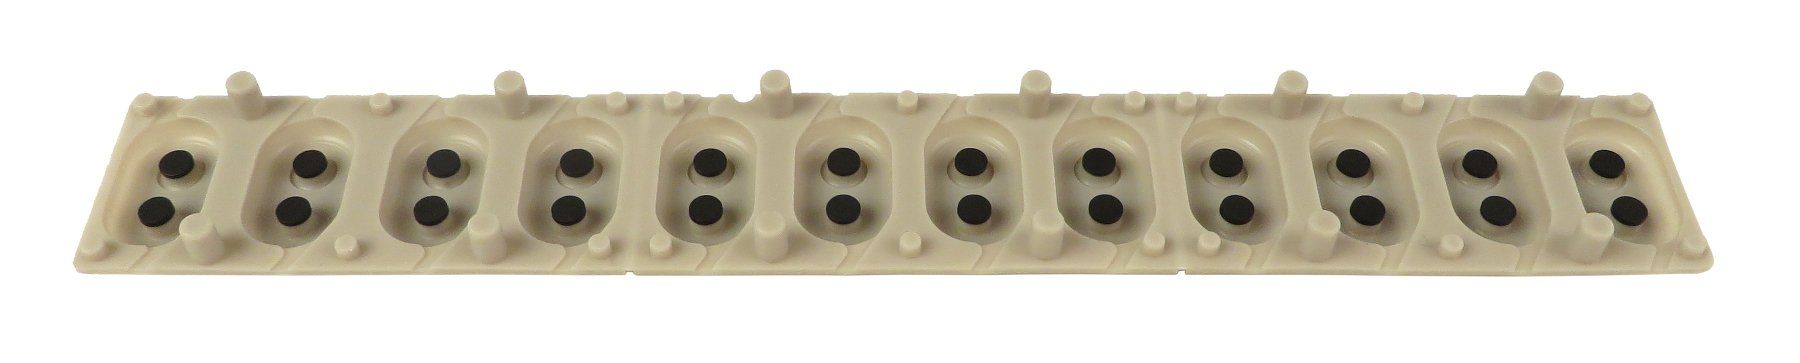 12-Key Contact Strip for Triton LE and PA Series